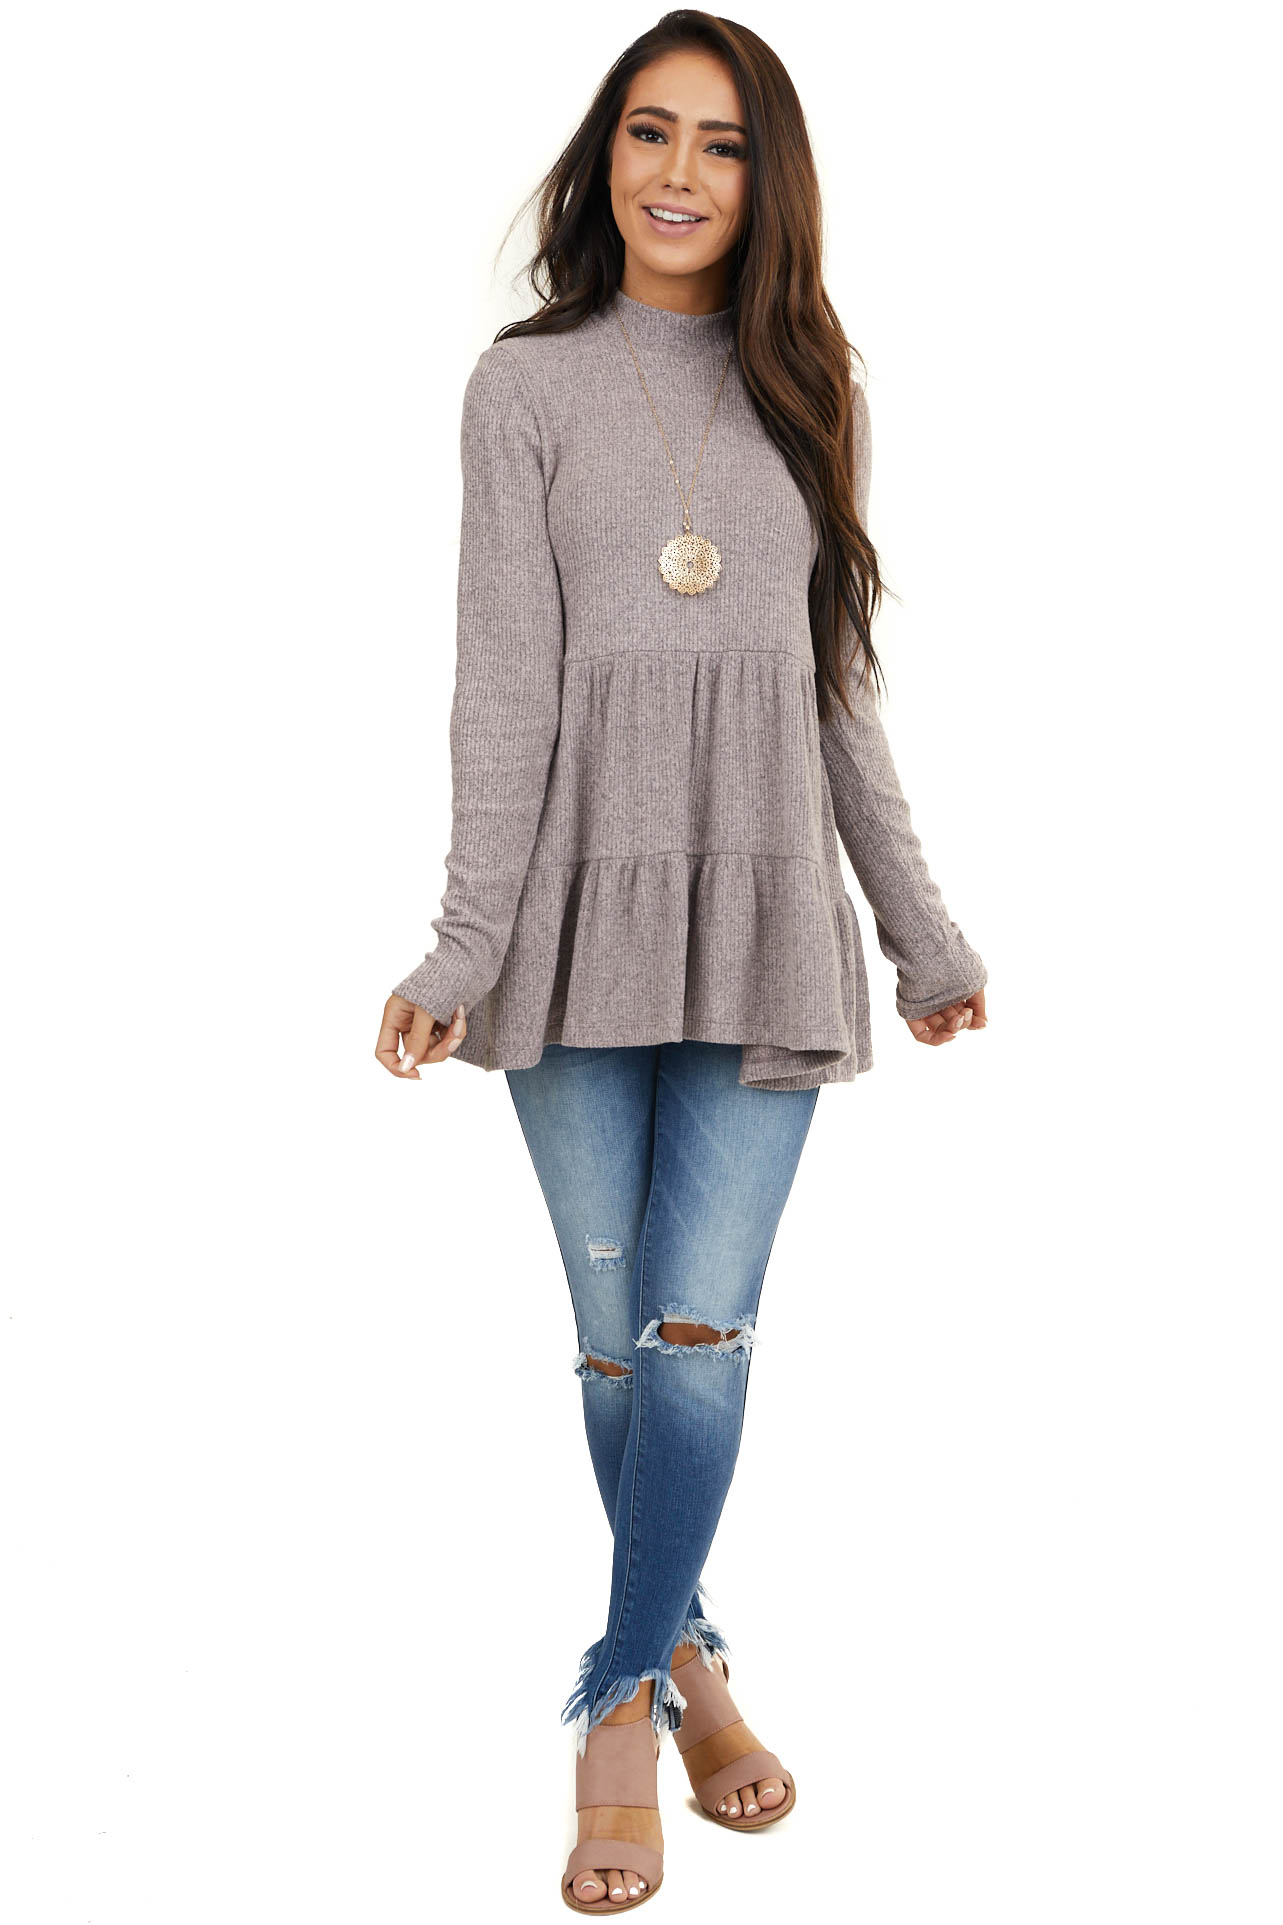 Heathered Dusty Rose Mock Neck Knit Top with Long Sleeves